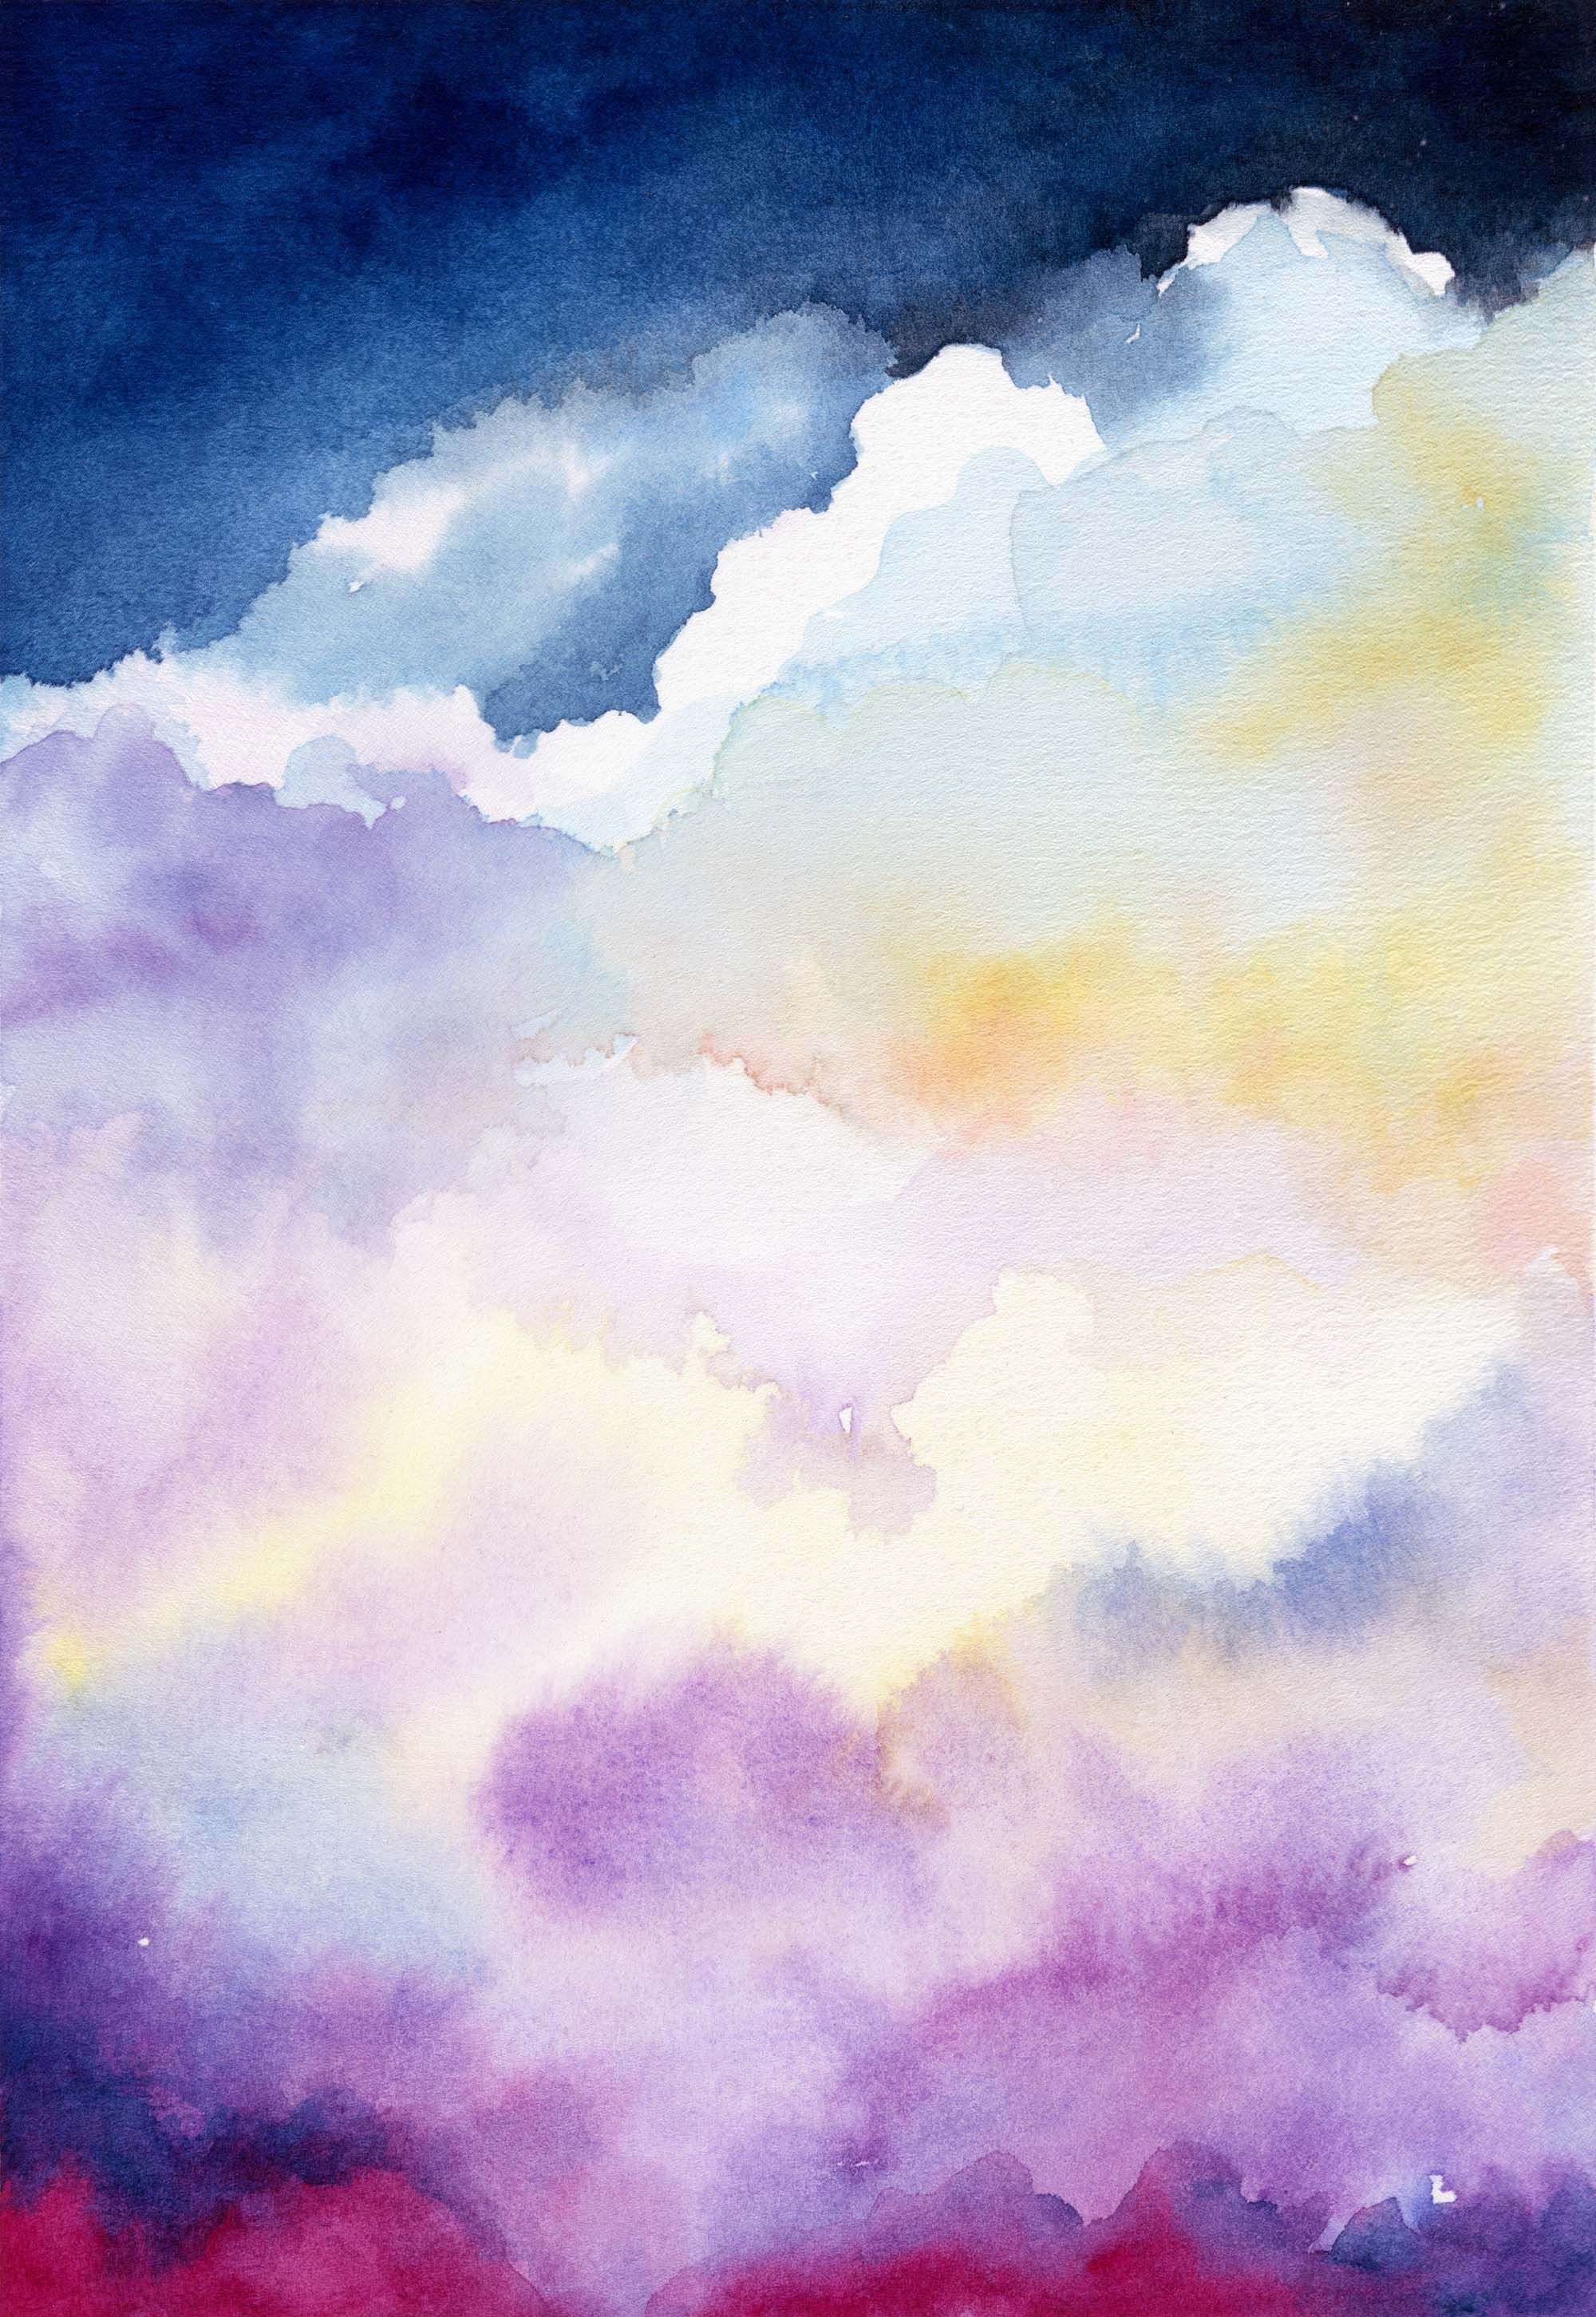 Cloud Watercolor Painting High Quality Archival Print Large Wall